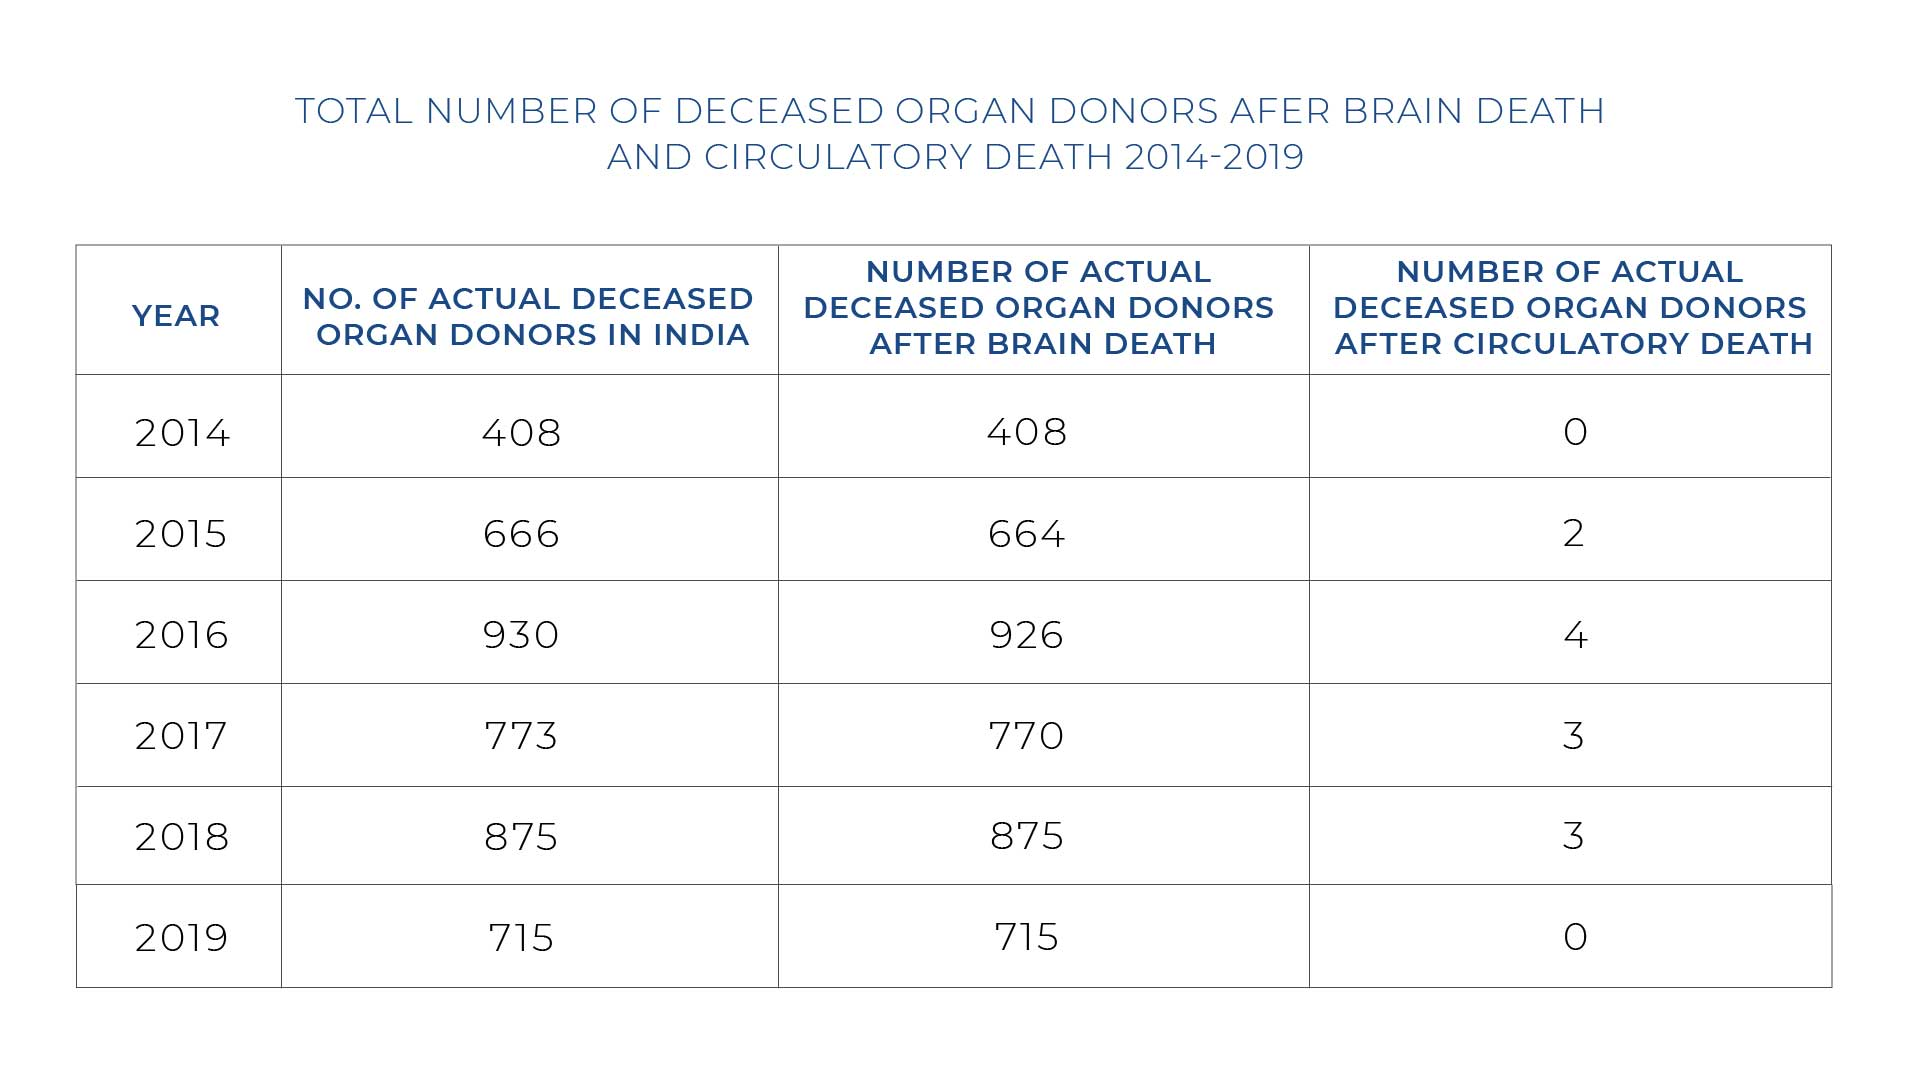 Deceased Organ Donors After Brain Death Circulatory Death